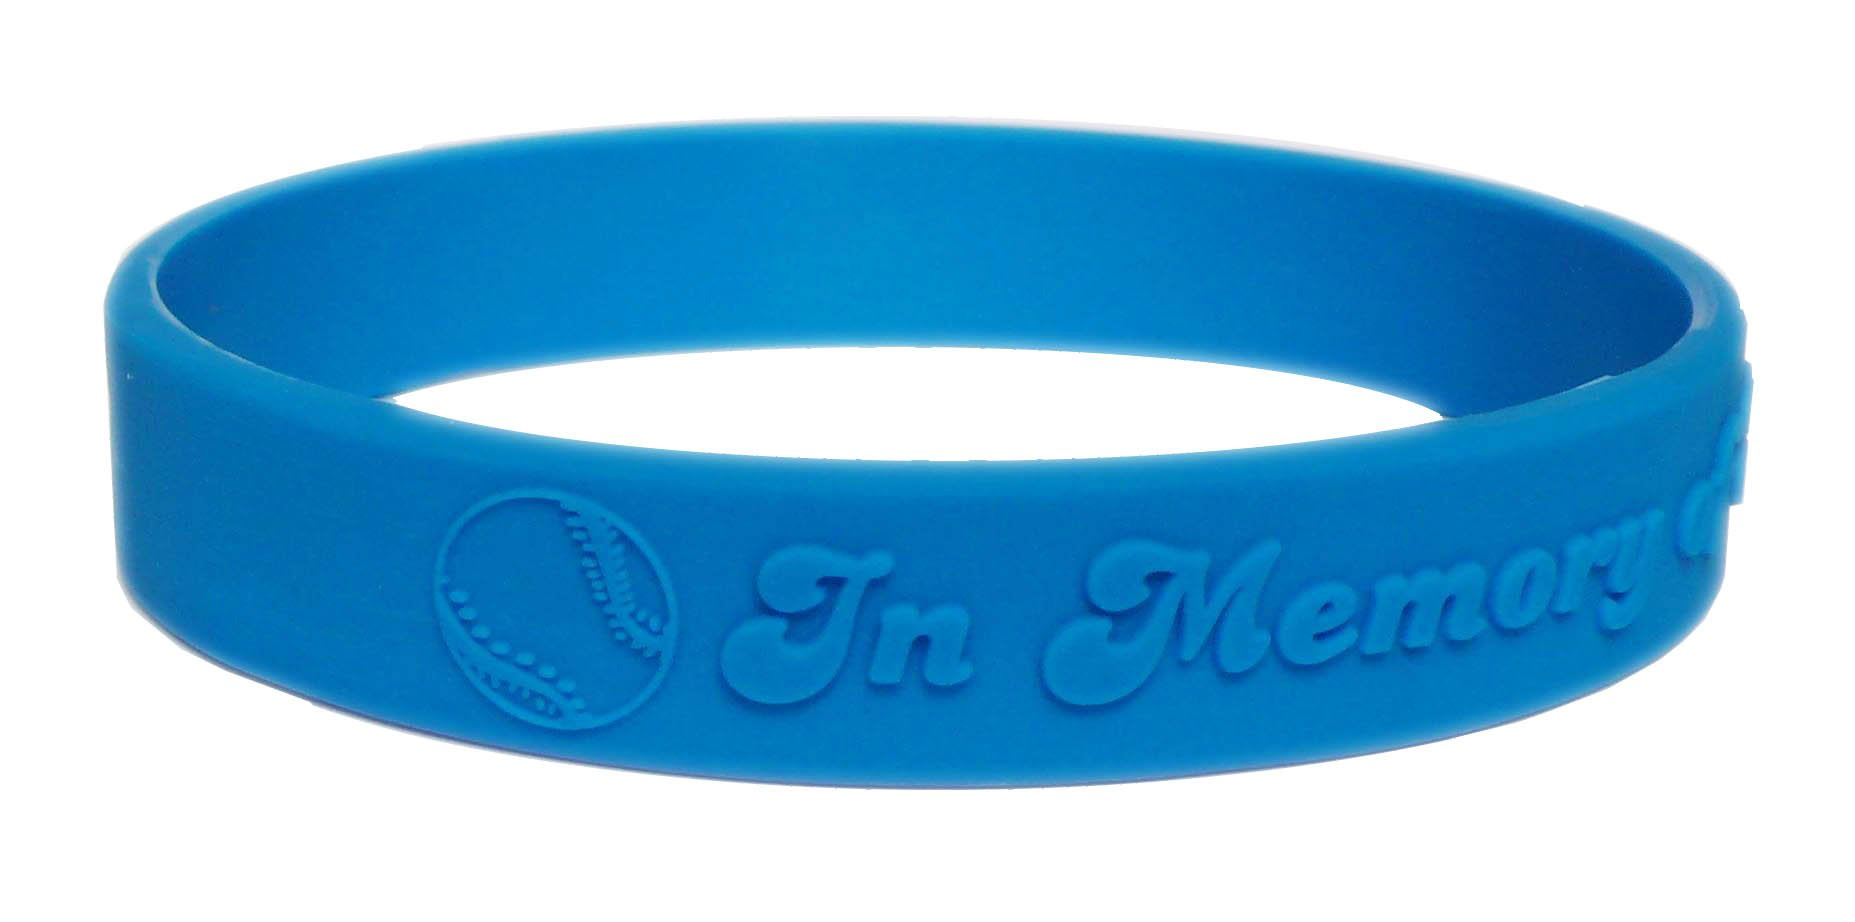 Lot Custom Rubber Bracelet Silicone Egwbe001 Embossed Text Or  Personalized Logo For